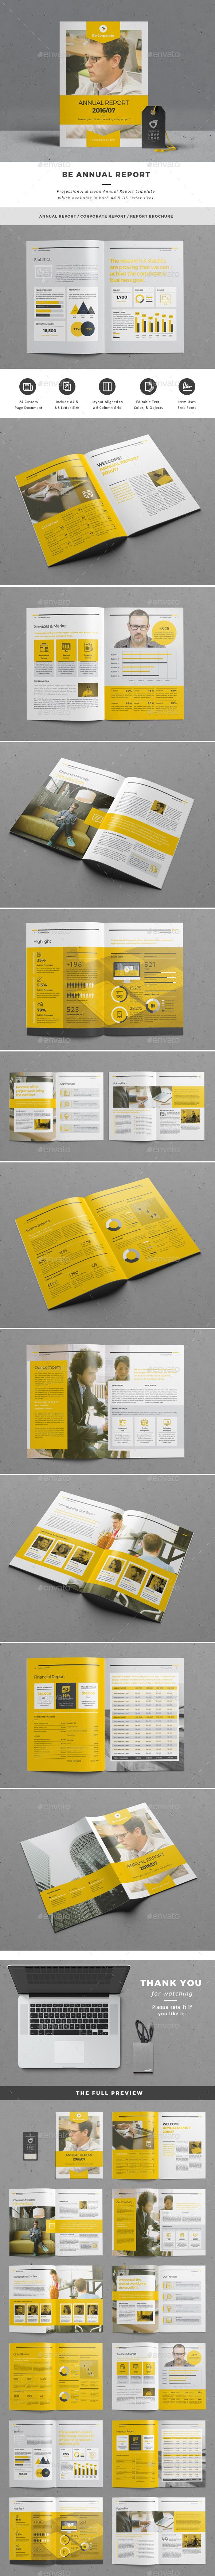 Be Annual Report #yellow • Available here → http://graphicriver.net/item/be-annual-report/15522022?ref=pxcr